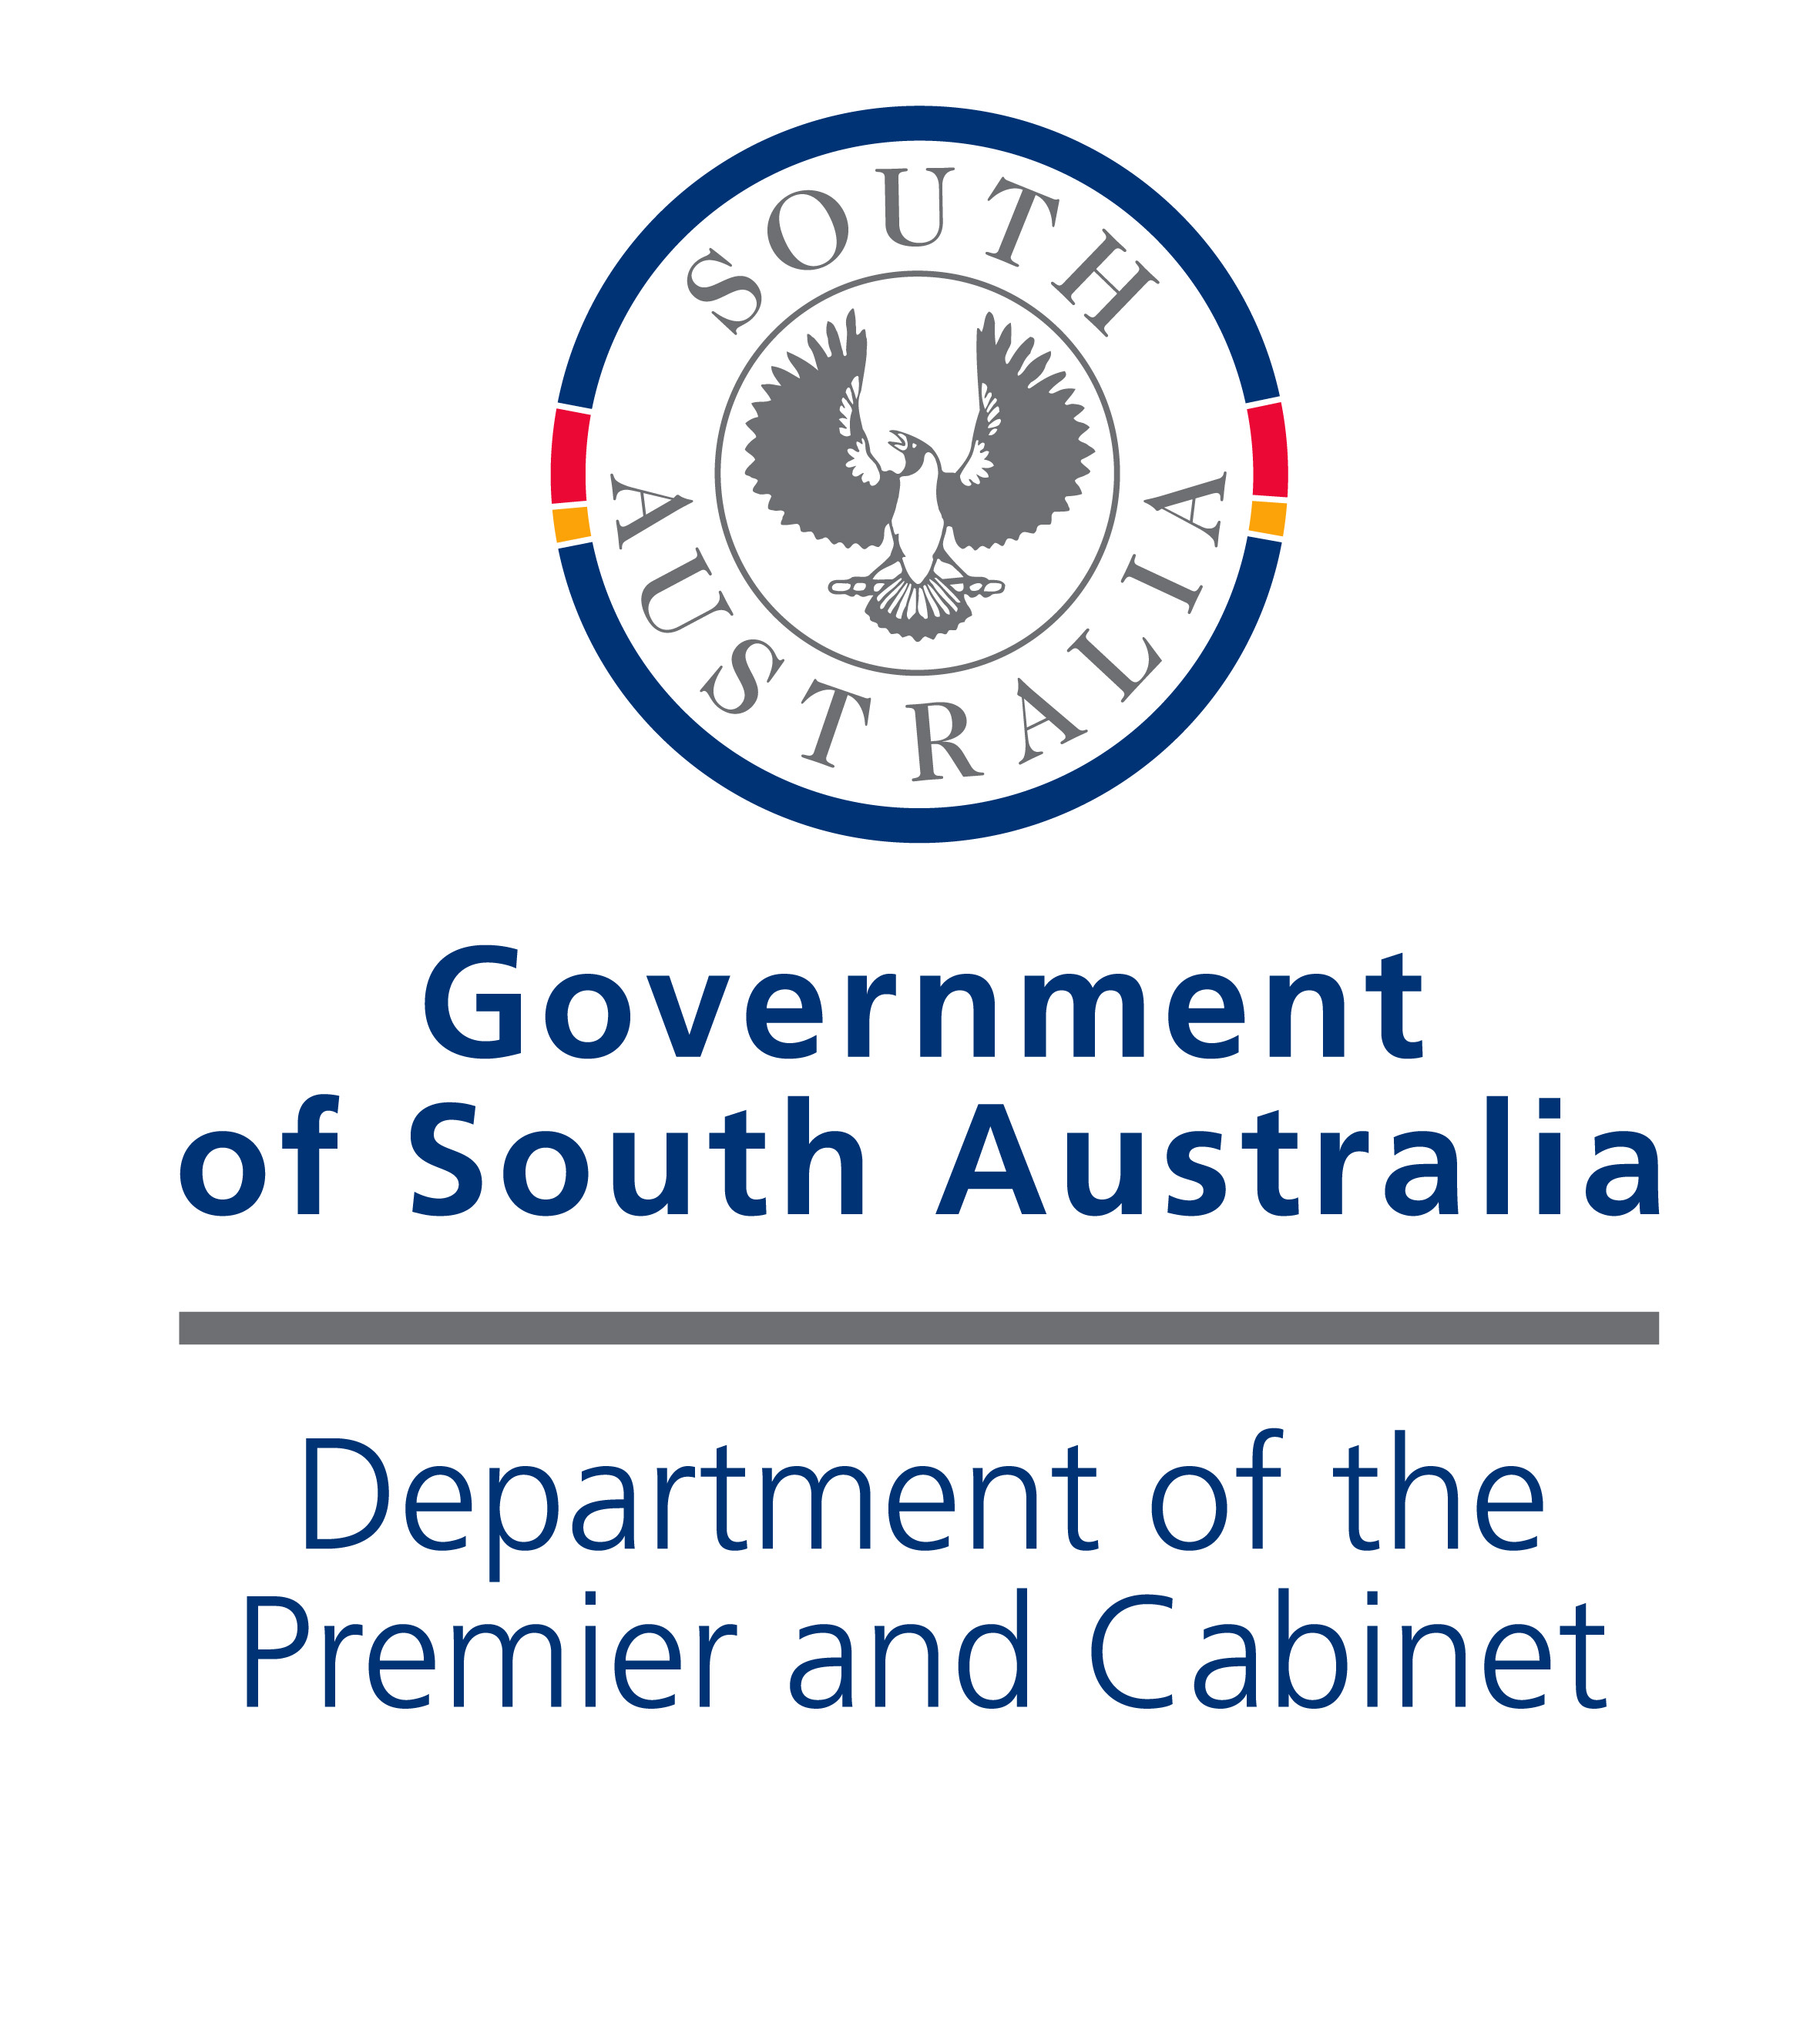 dept-of-the-premier-and-cabinet